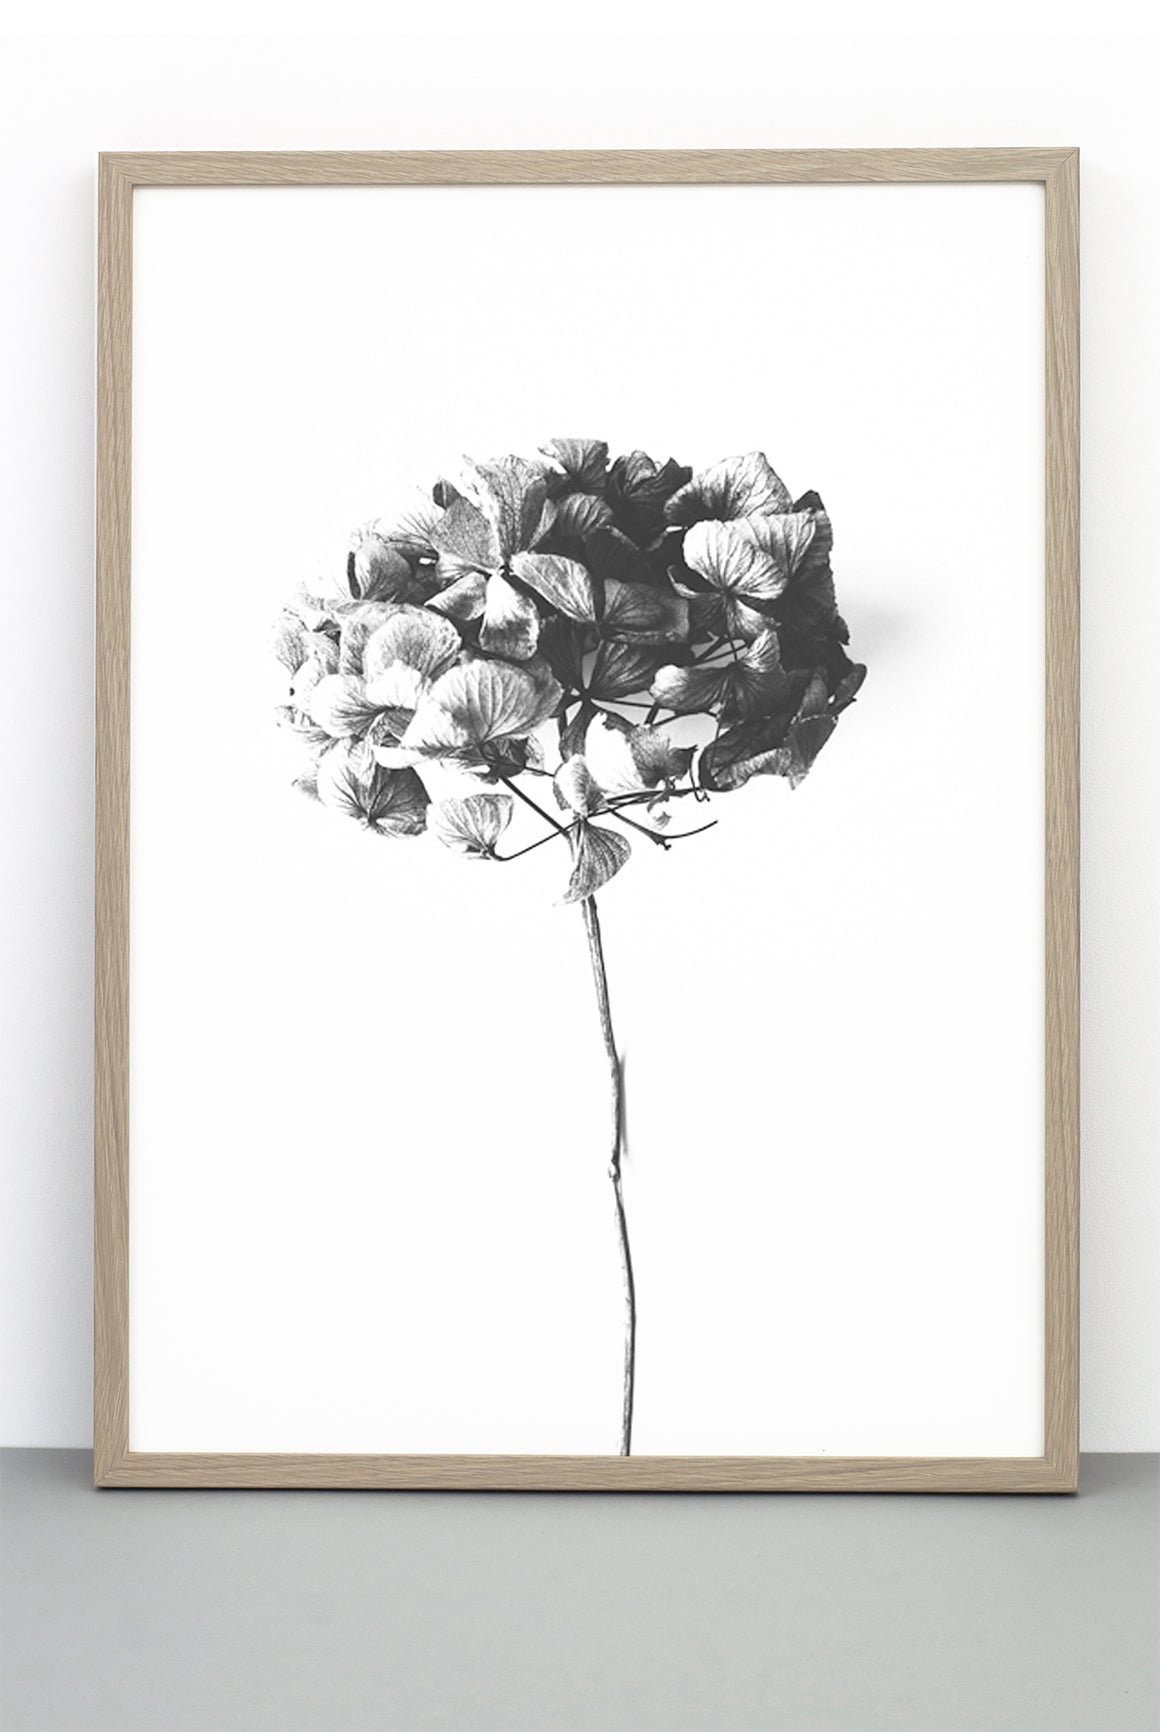 HONEY HONEY PRINT,  A BOTANICAL PHOTOGRAPHIC BLACK AND WHITE POSTER